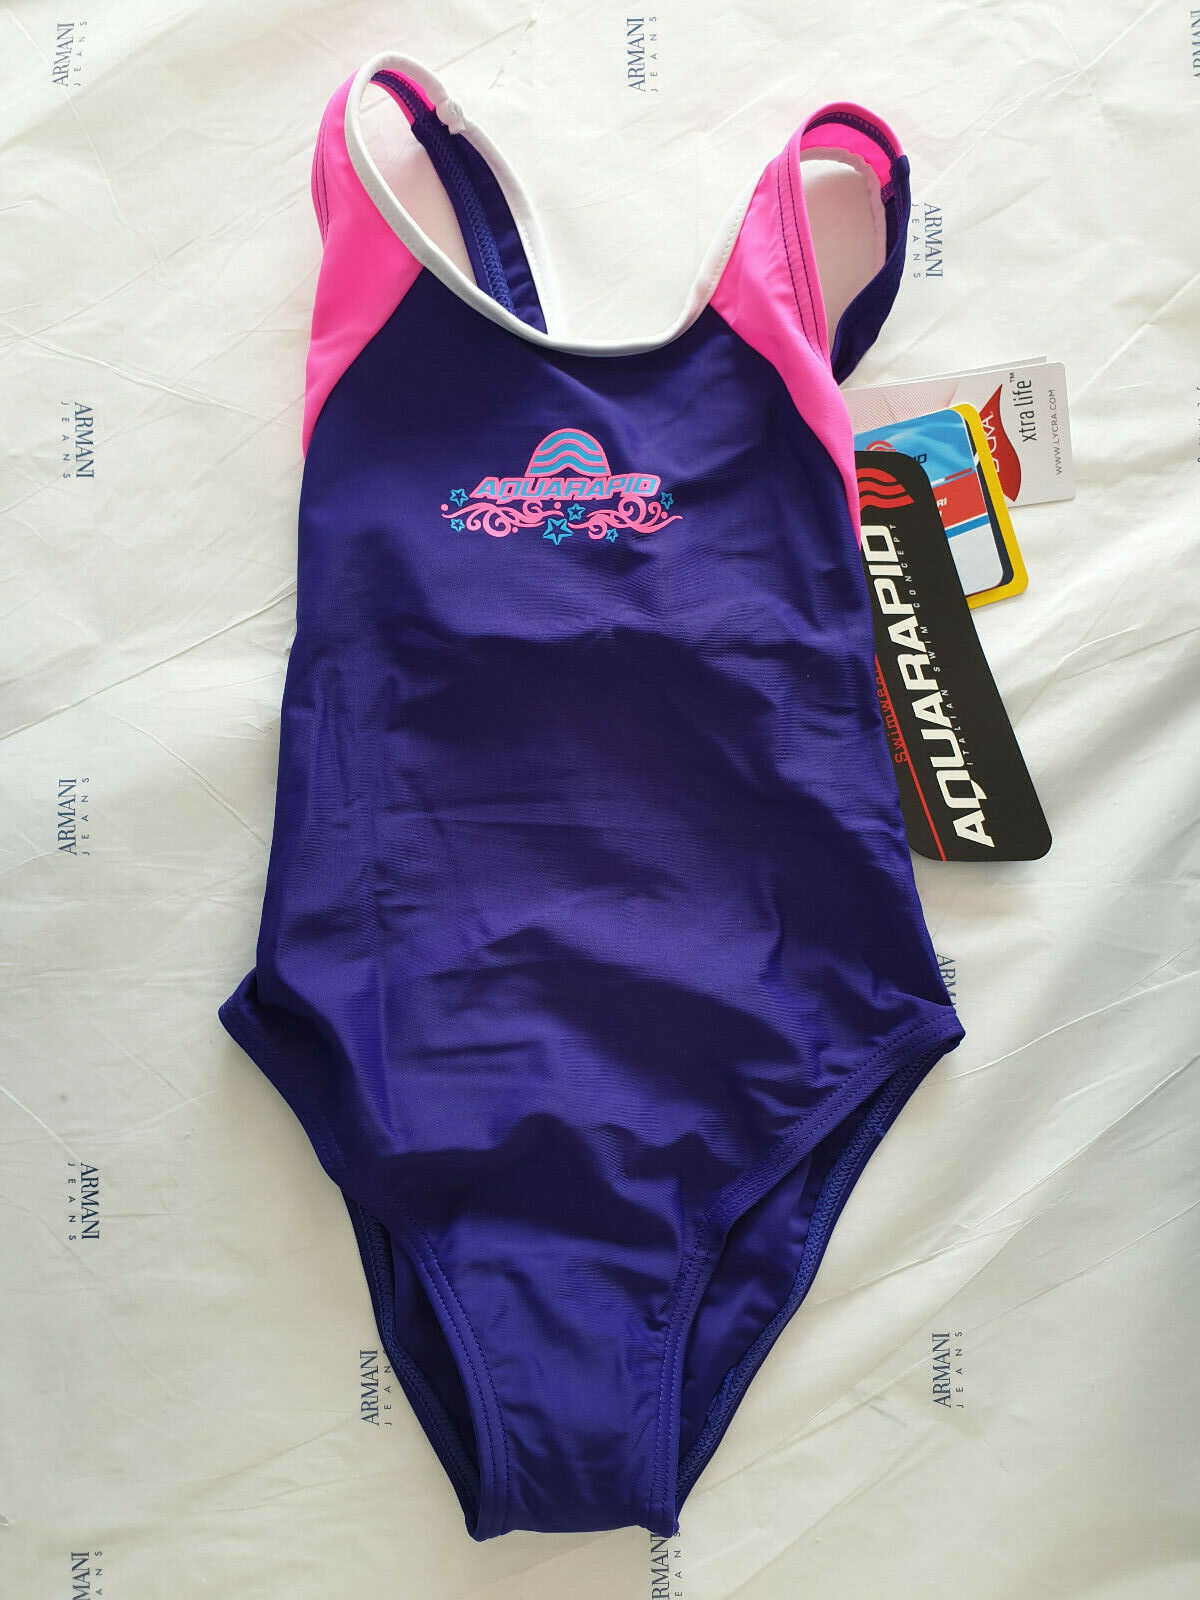 COSTUME AQUARAPID BAMBINA PEPES E VIOLET VIOLA INTERO PISCINA MARE SWIMSUIT